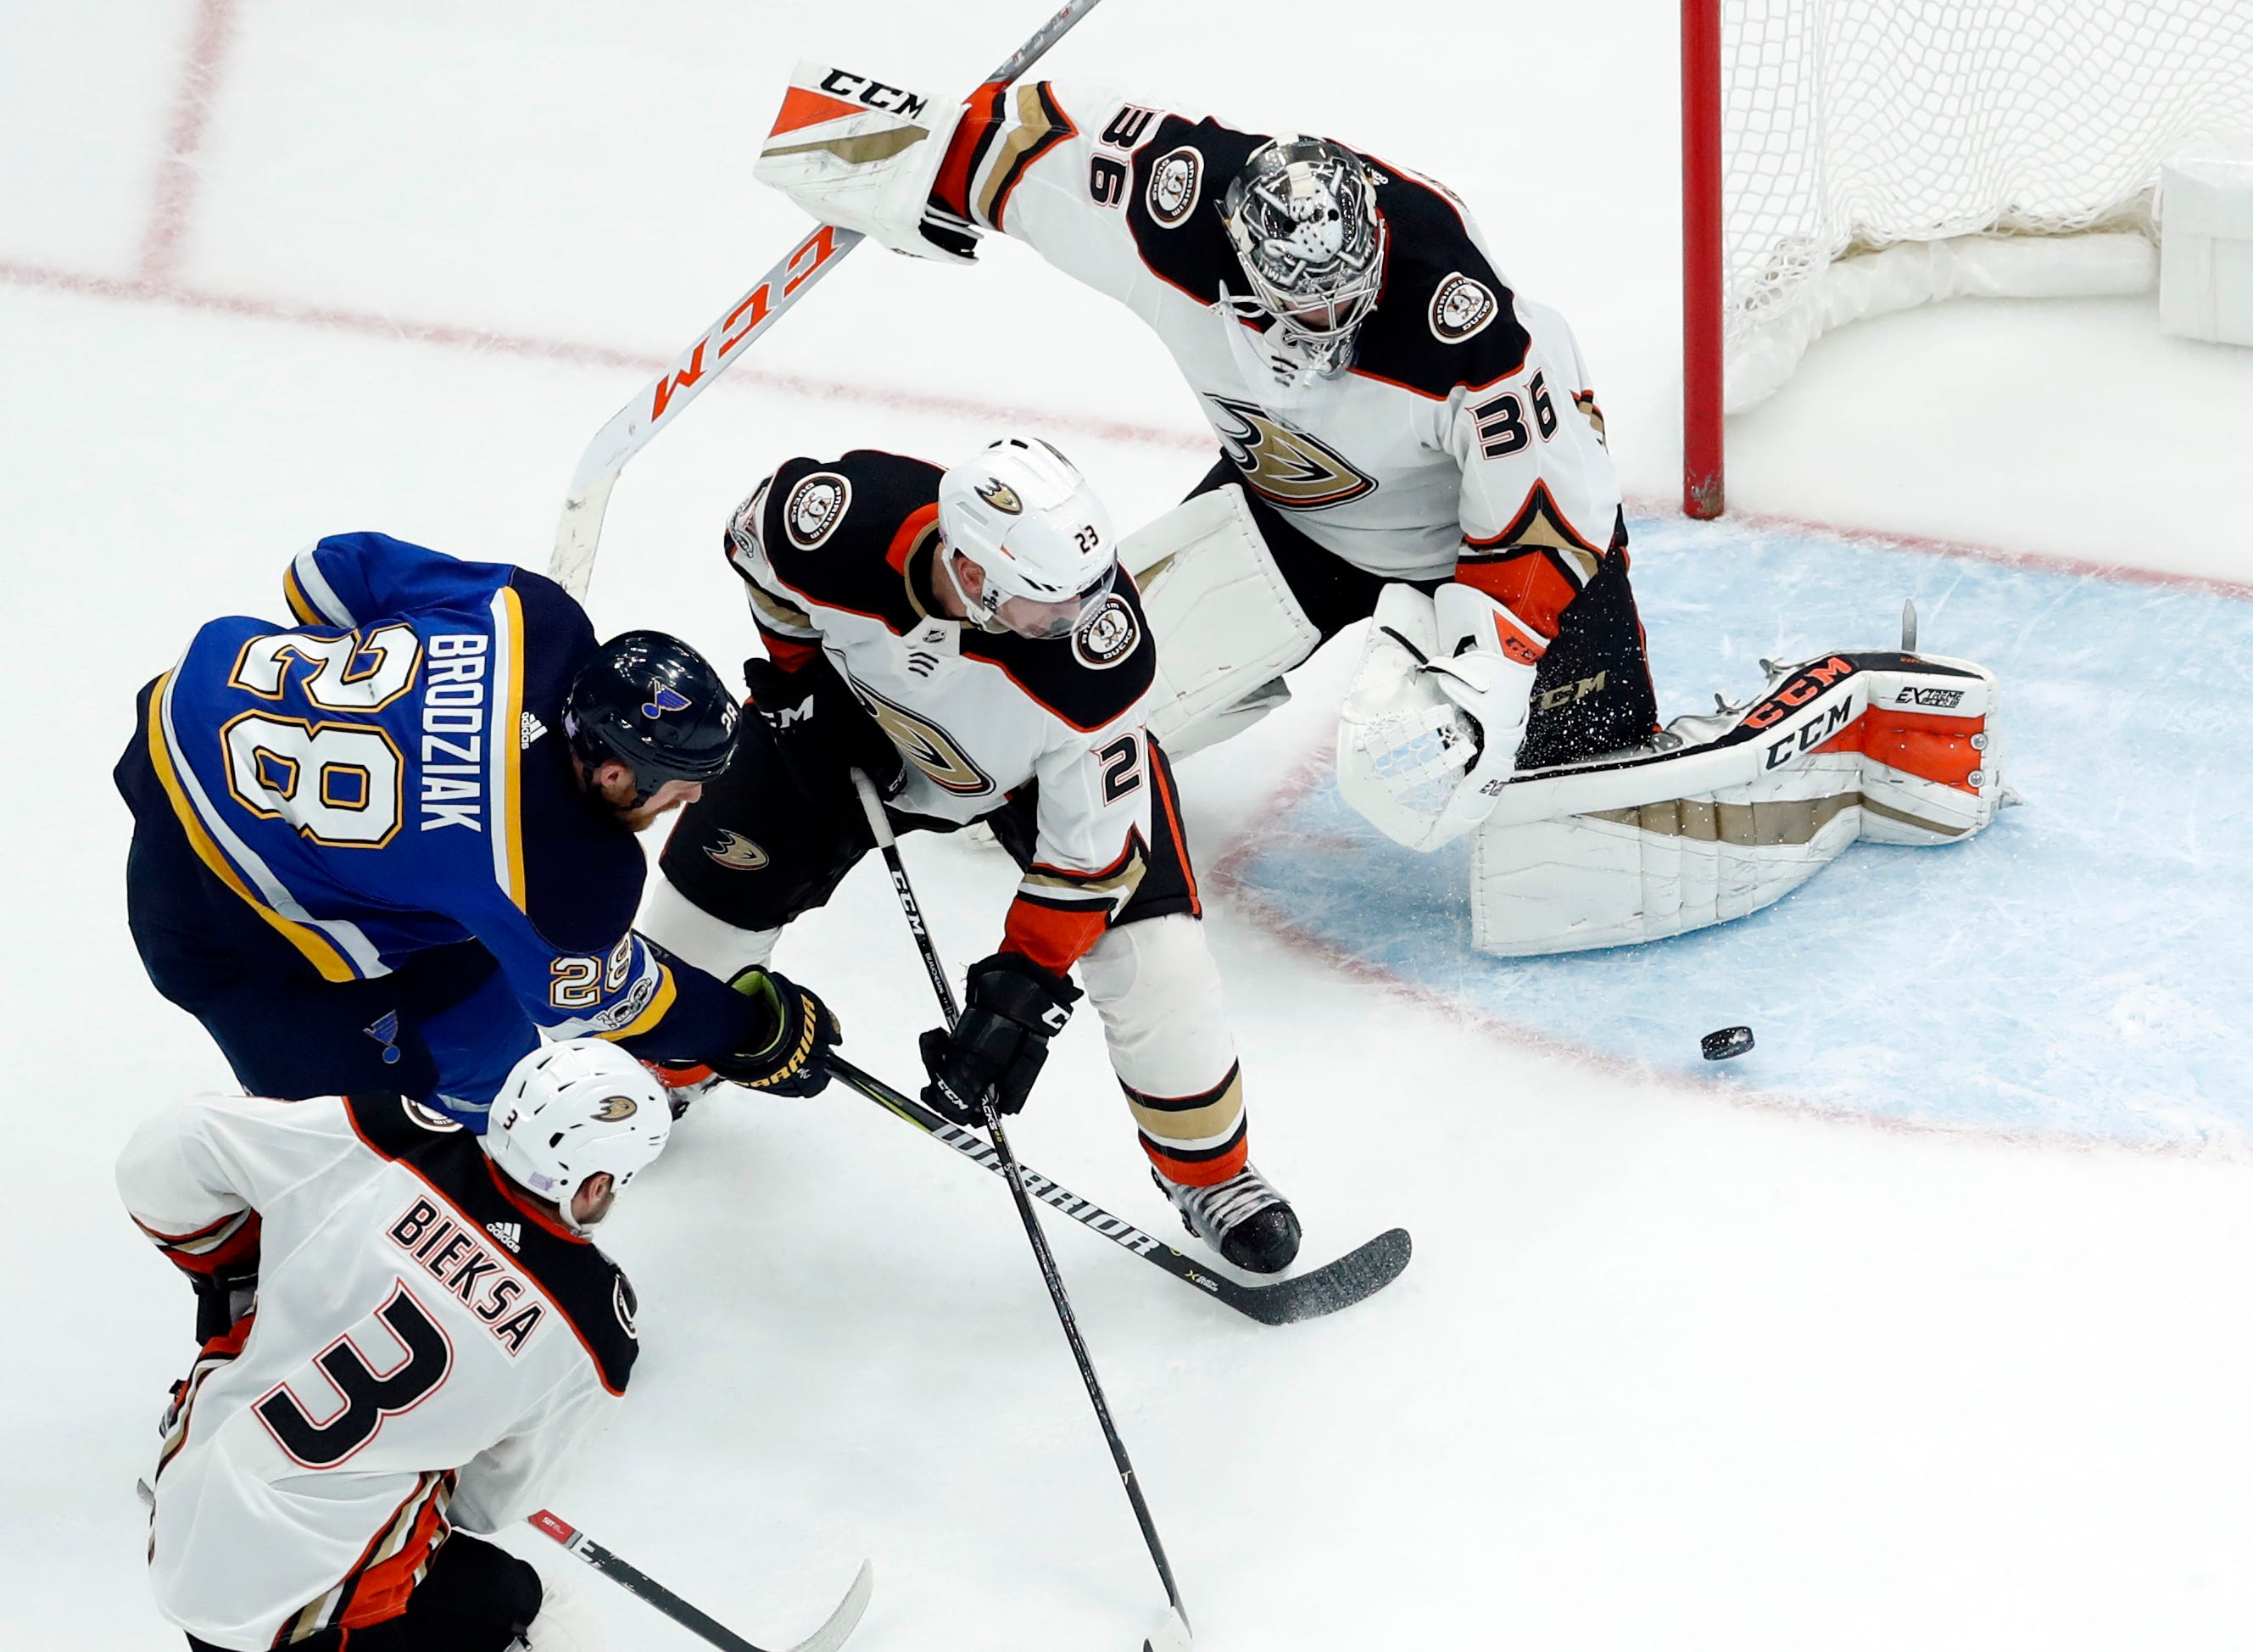 Vermette scores twice to lead Ducks past Blues